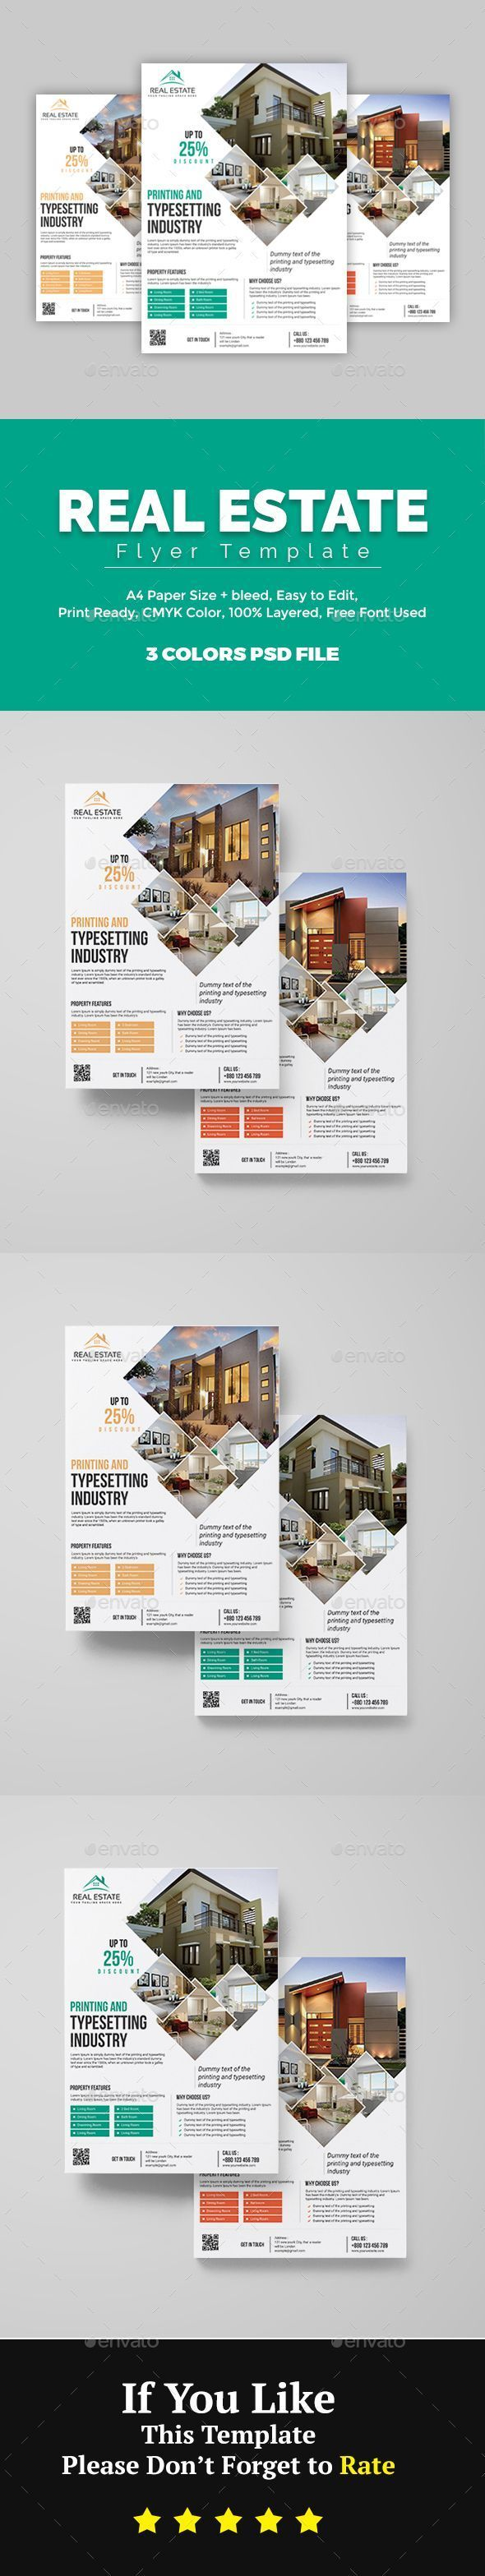 Real Estate Template%0A  Real  Estate  Flyer  Flyers Print Templates Download here  https